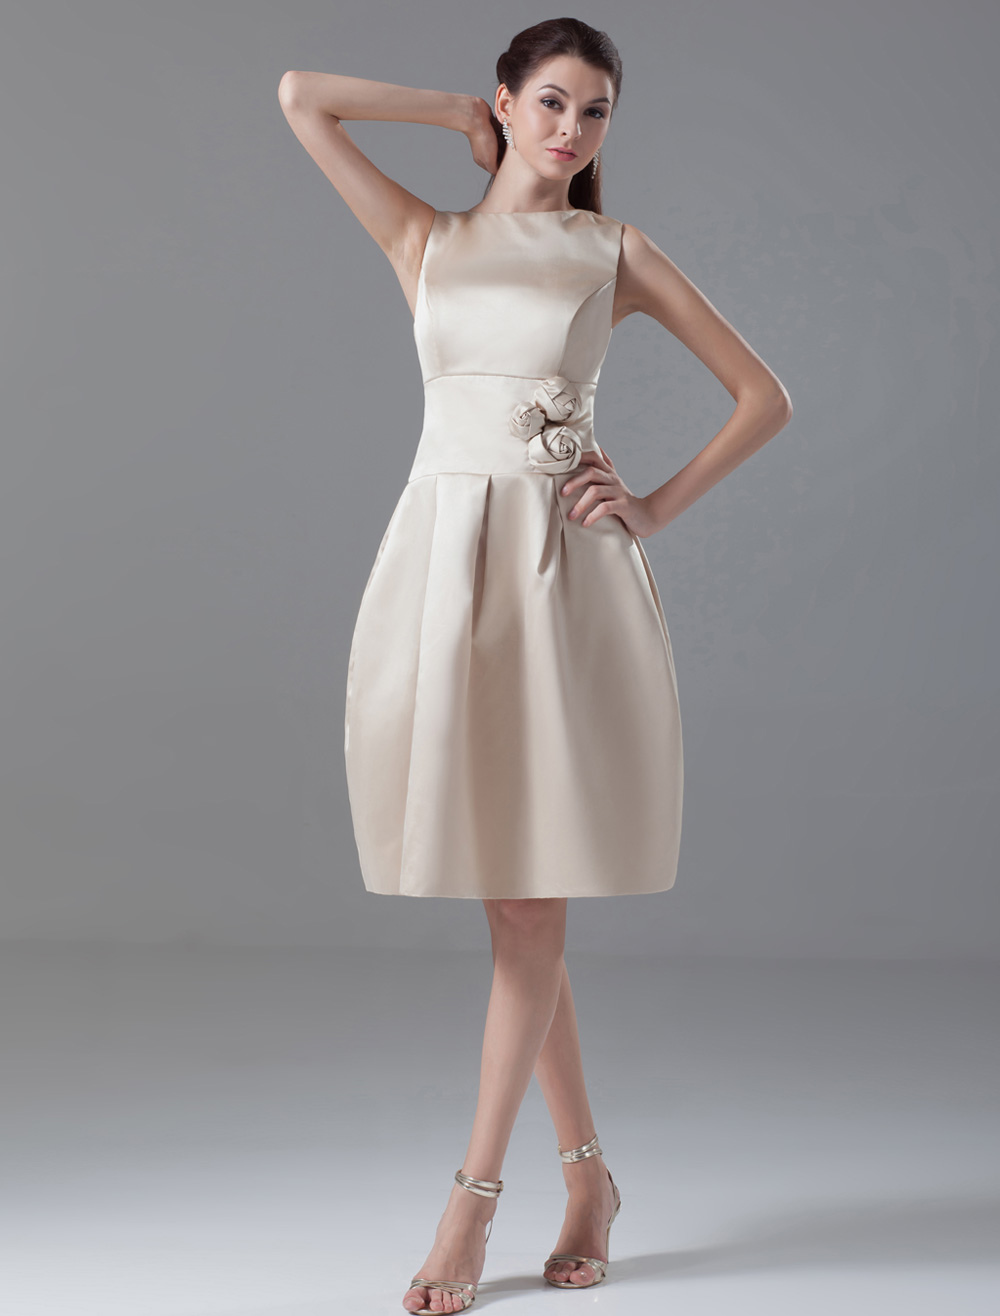 Champagne A-line Pretty Knee-Length Flower Satin Cocktail Dress with Jewel Neck